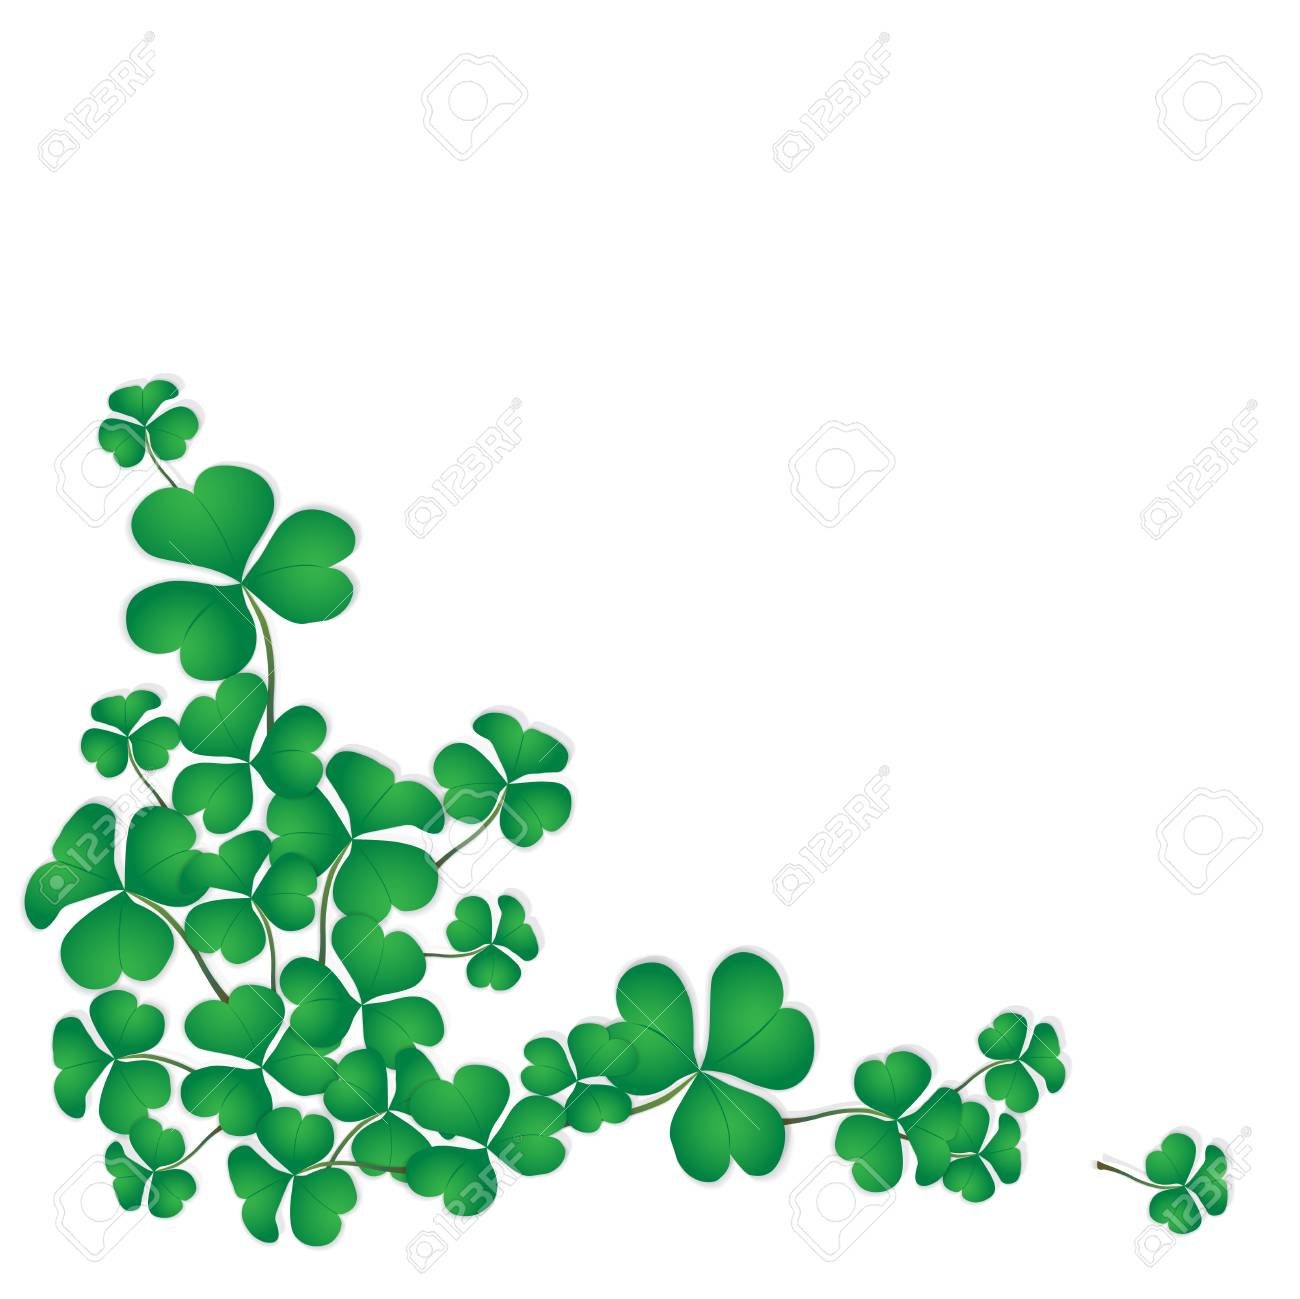 shamrock design with white space background for saint patricks day green clovers corner isolated on